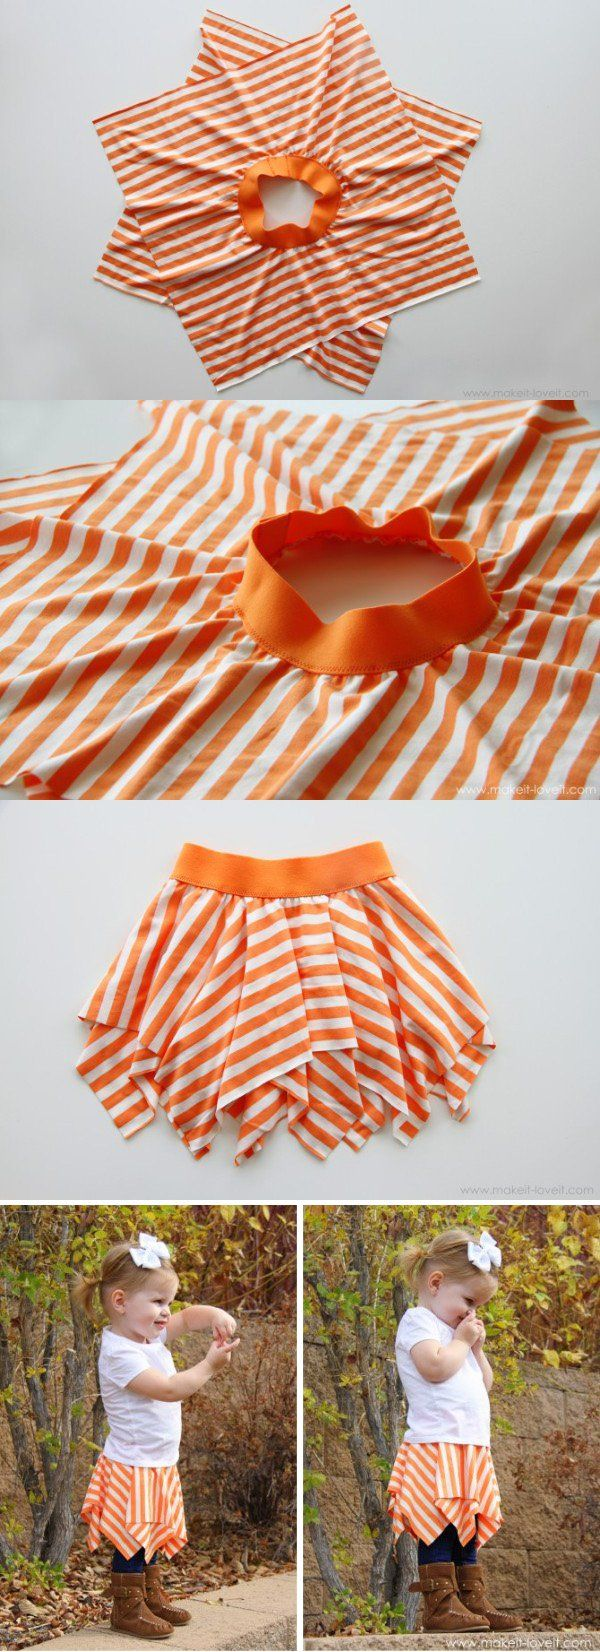 15 DIY Projects with One Yard or Less of Fabric - Diy skirt tutorial, Diy skirt, Sewing for kids, Sewing patterns, Crafts, Diy sewing - If you enjoy spending your long summer days with crafty things then you'll absolutely love this post  Everyone has a pile of small fabrics waiting aimlessly in their sewing basket and today is their day to become something useful  Below you'll find 15 diy projects that you can make with only one yard or less […]